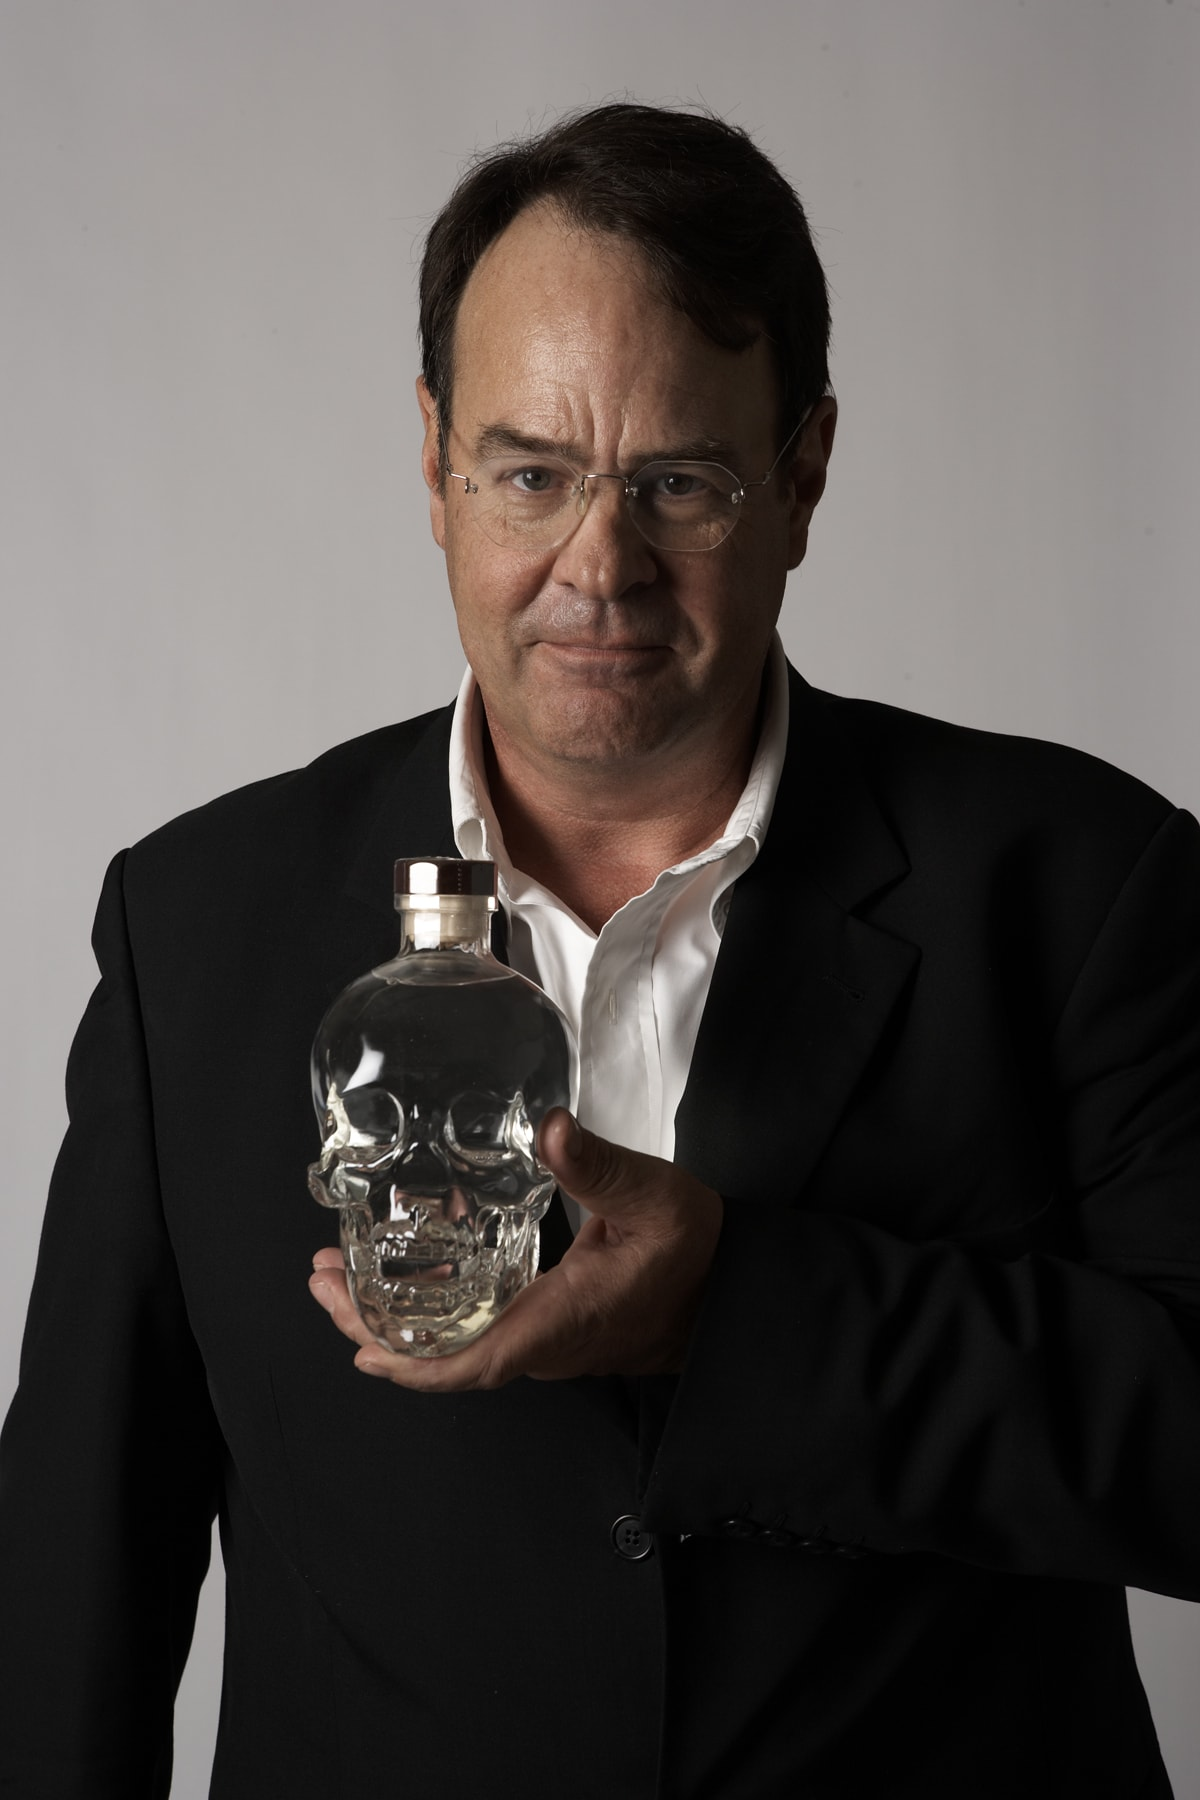 Dan Aykroyd Wallpapers